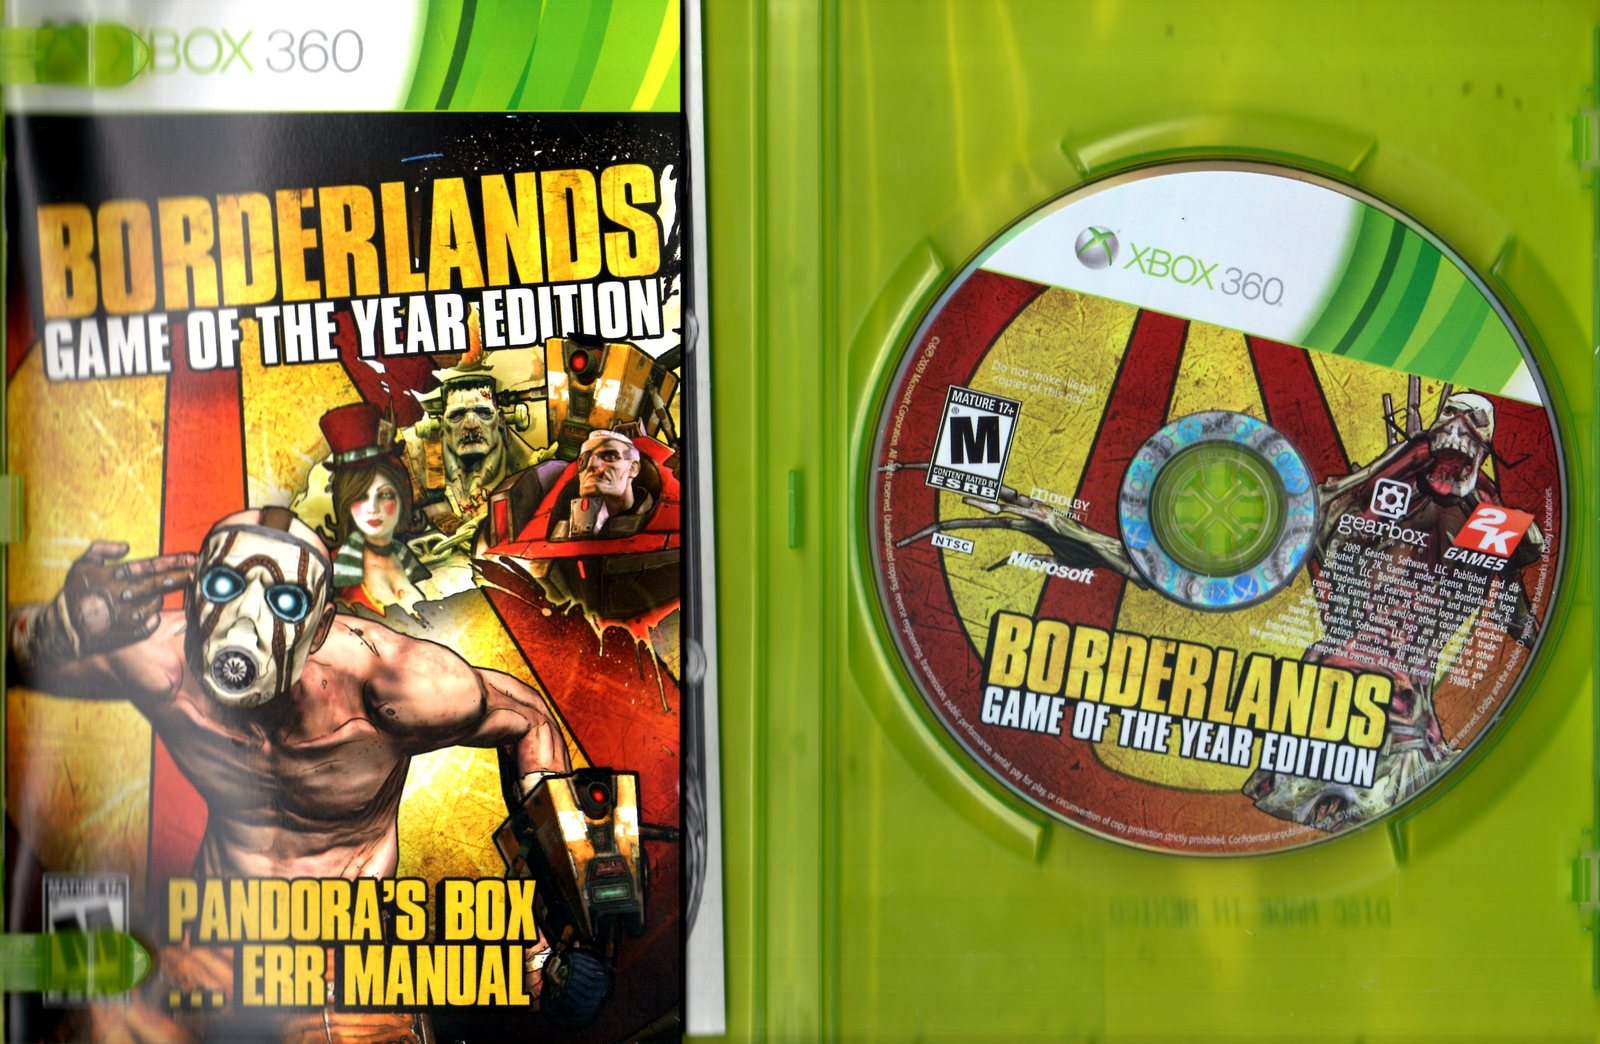 XBOX 360 - Borderlands (Game Of The Year Edition)